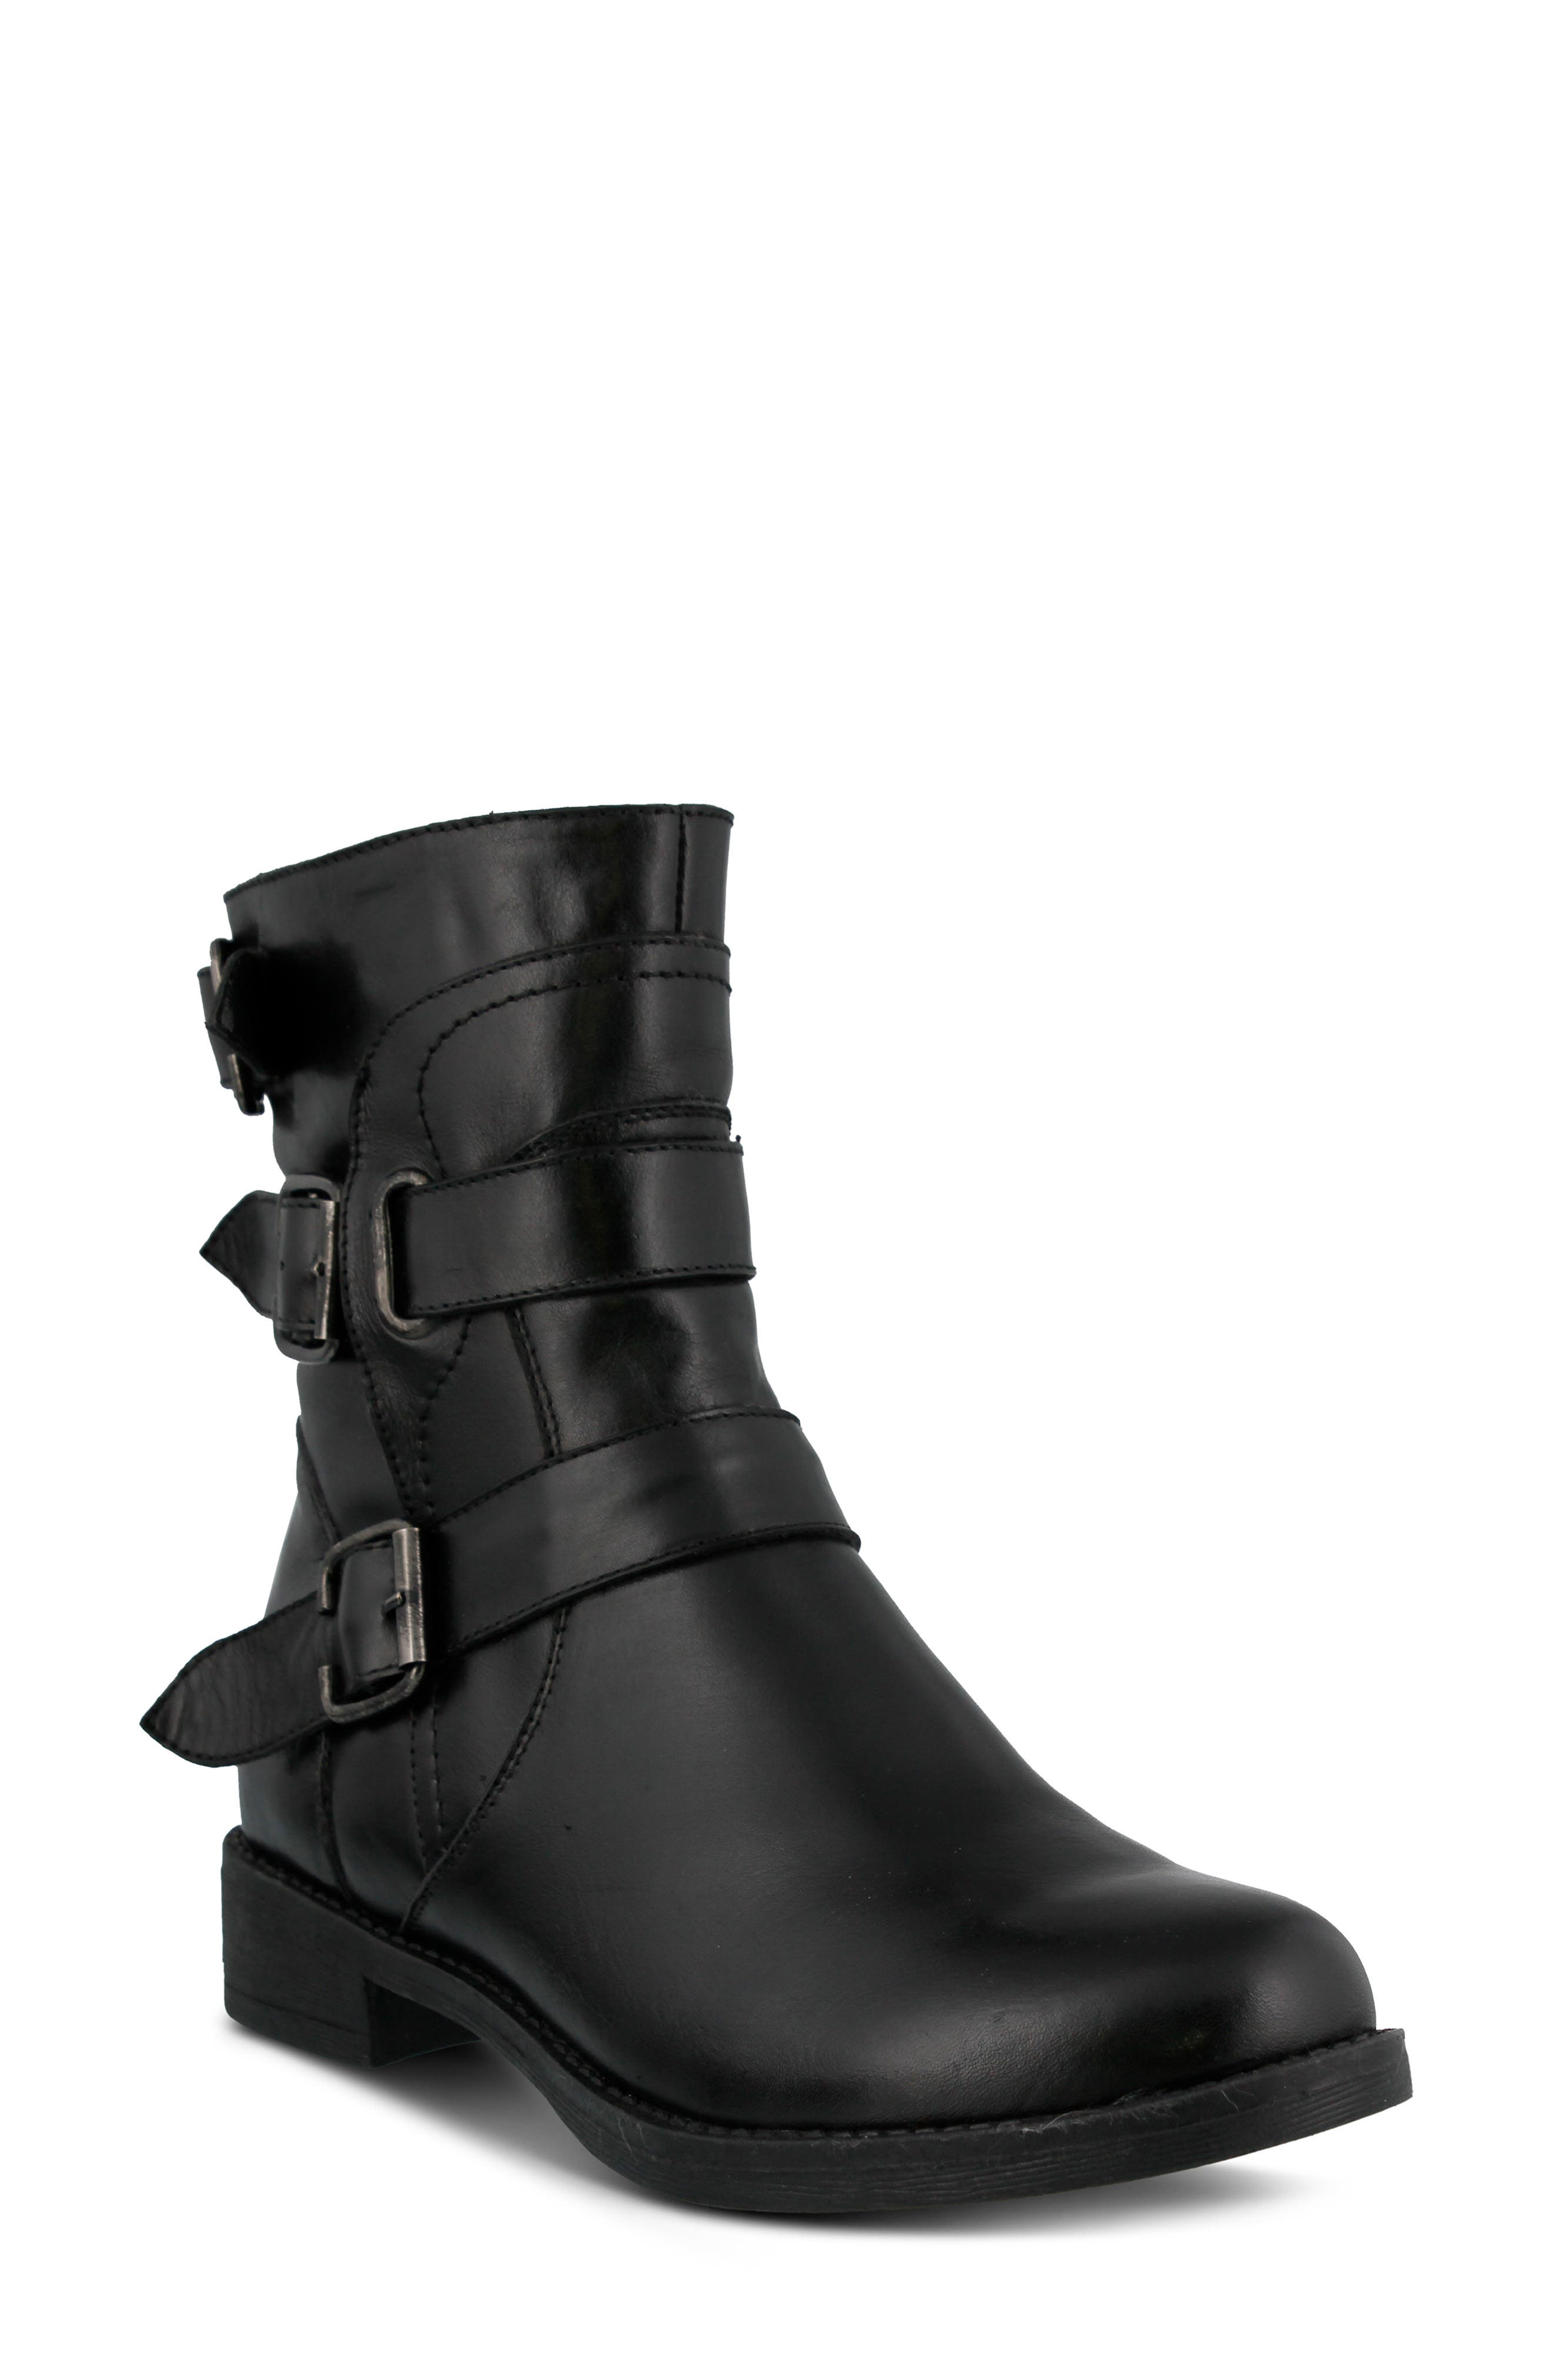 Spring Step Diony Engineer Bootie - Black